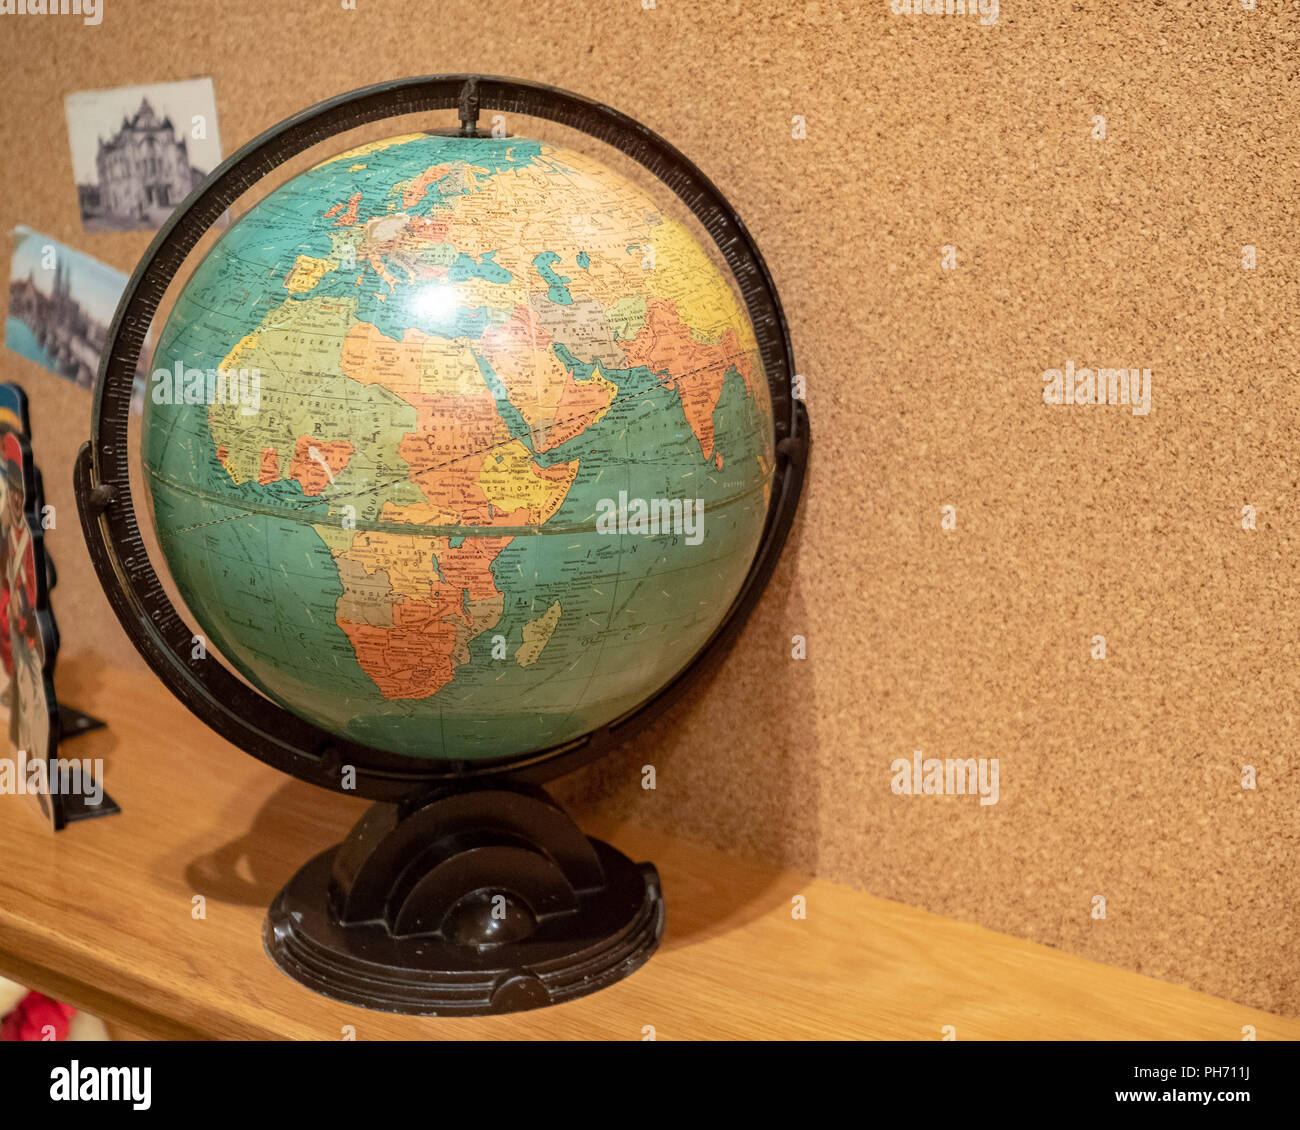 Rustic world globe displaying Africa and Europe in a child's room - Stock Image